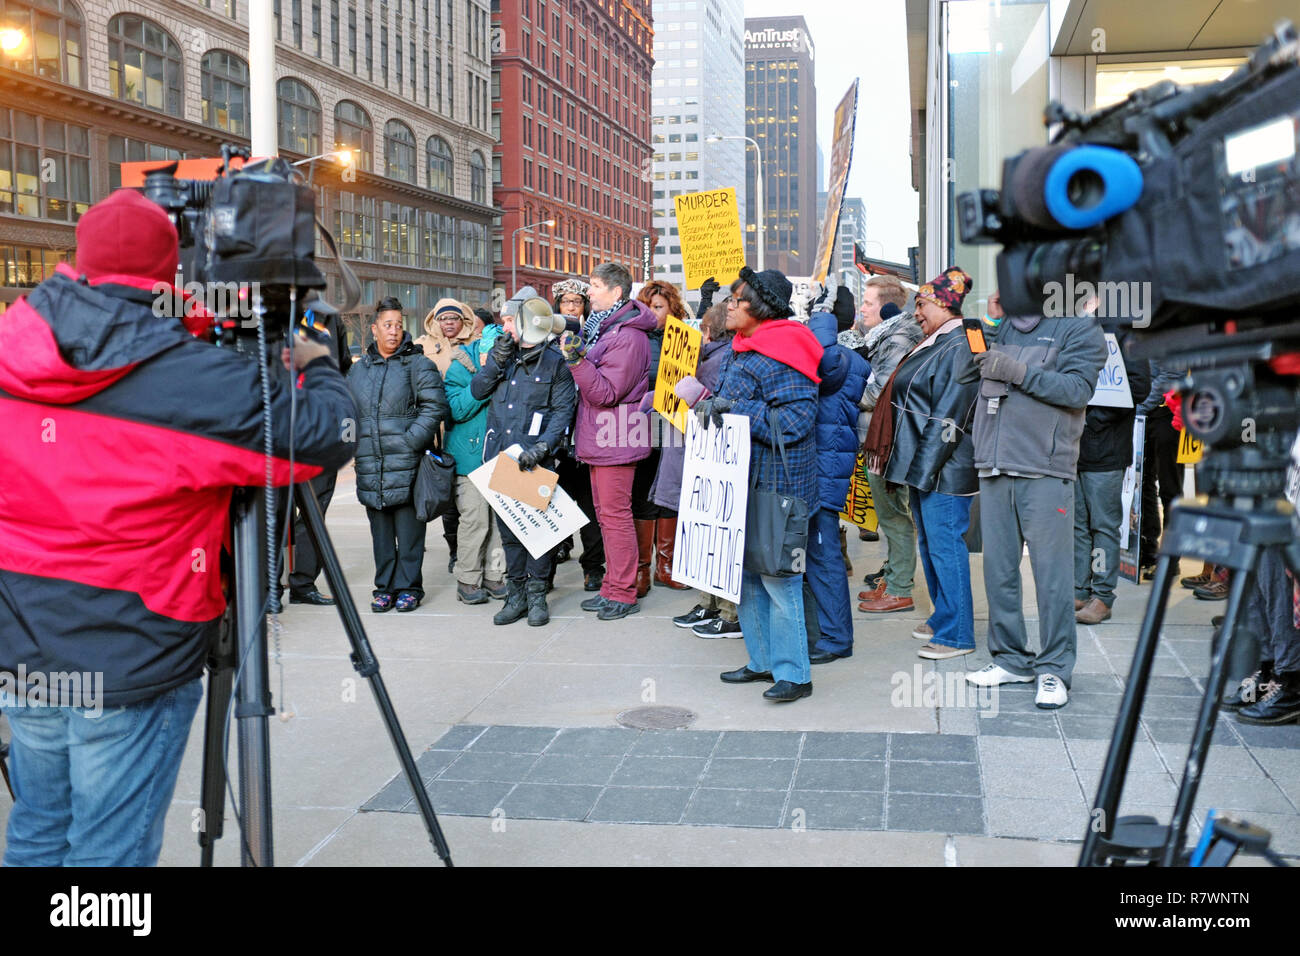 Cleveland, Ohio, USA, 11th Dec, 2018.  Protesters converge on East 9th Street in downtown Cleveland, Ohio outside the Cuyahoga County Administration Building to protest the 'inhumane' conditions of the jail system as well as the death of 7 inmates in the past 6 months.  The protesters include those with loved ones who died in the care of Cuyahoga County Jails.  One sign includes the names of all of those who have died in their custody which triggered a federal review of the jail resulting in a scathing report by the U.S. Marshals. Credit: Mark Kanning/Alamy Live News - Stock Image